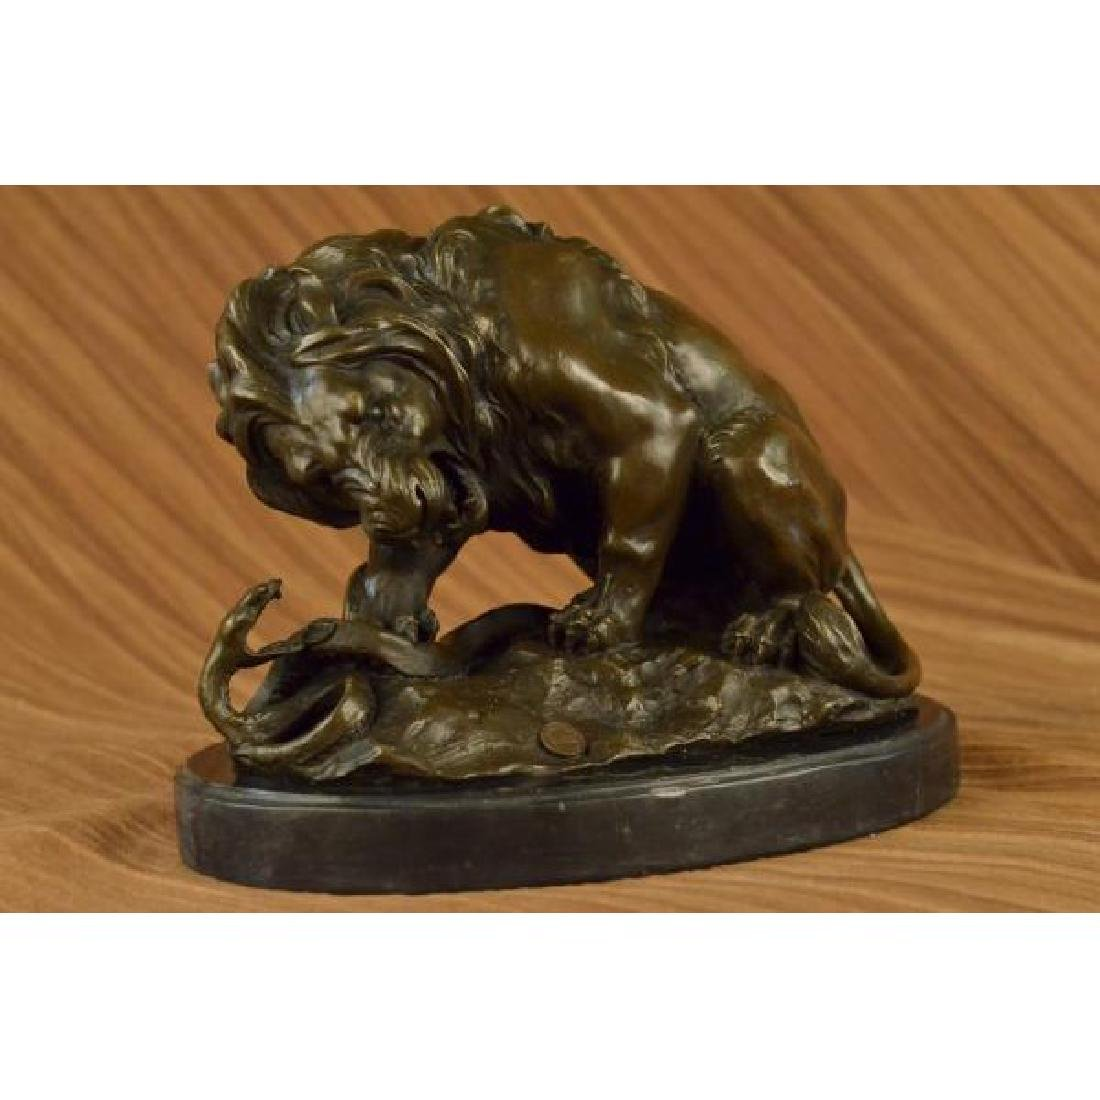 Lion and Snake Bronze Sculpture on Marble Base Statue